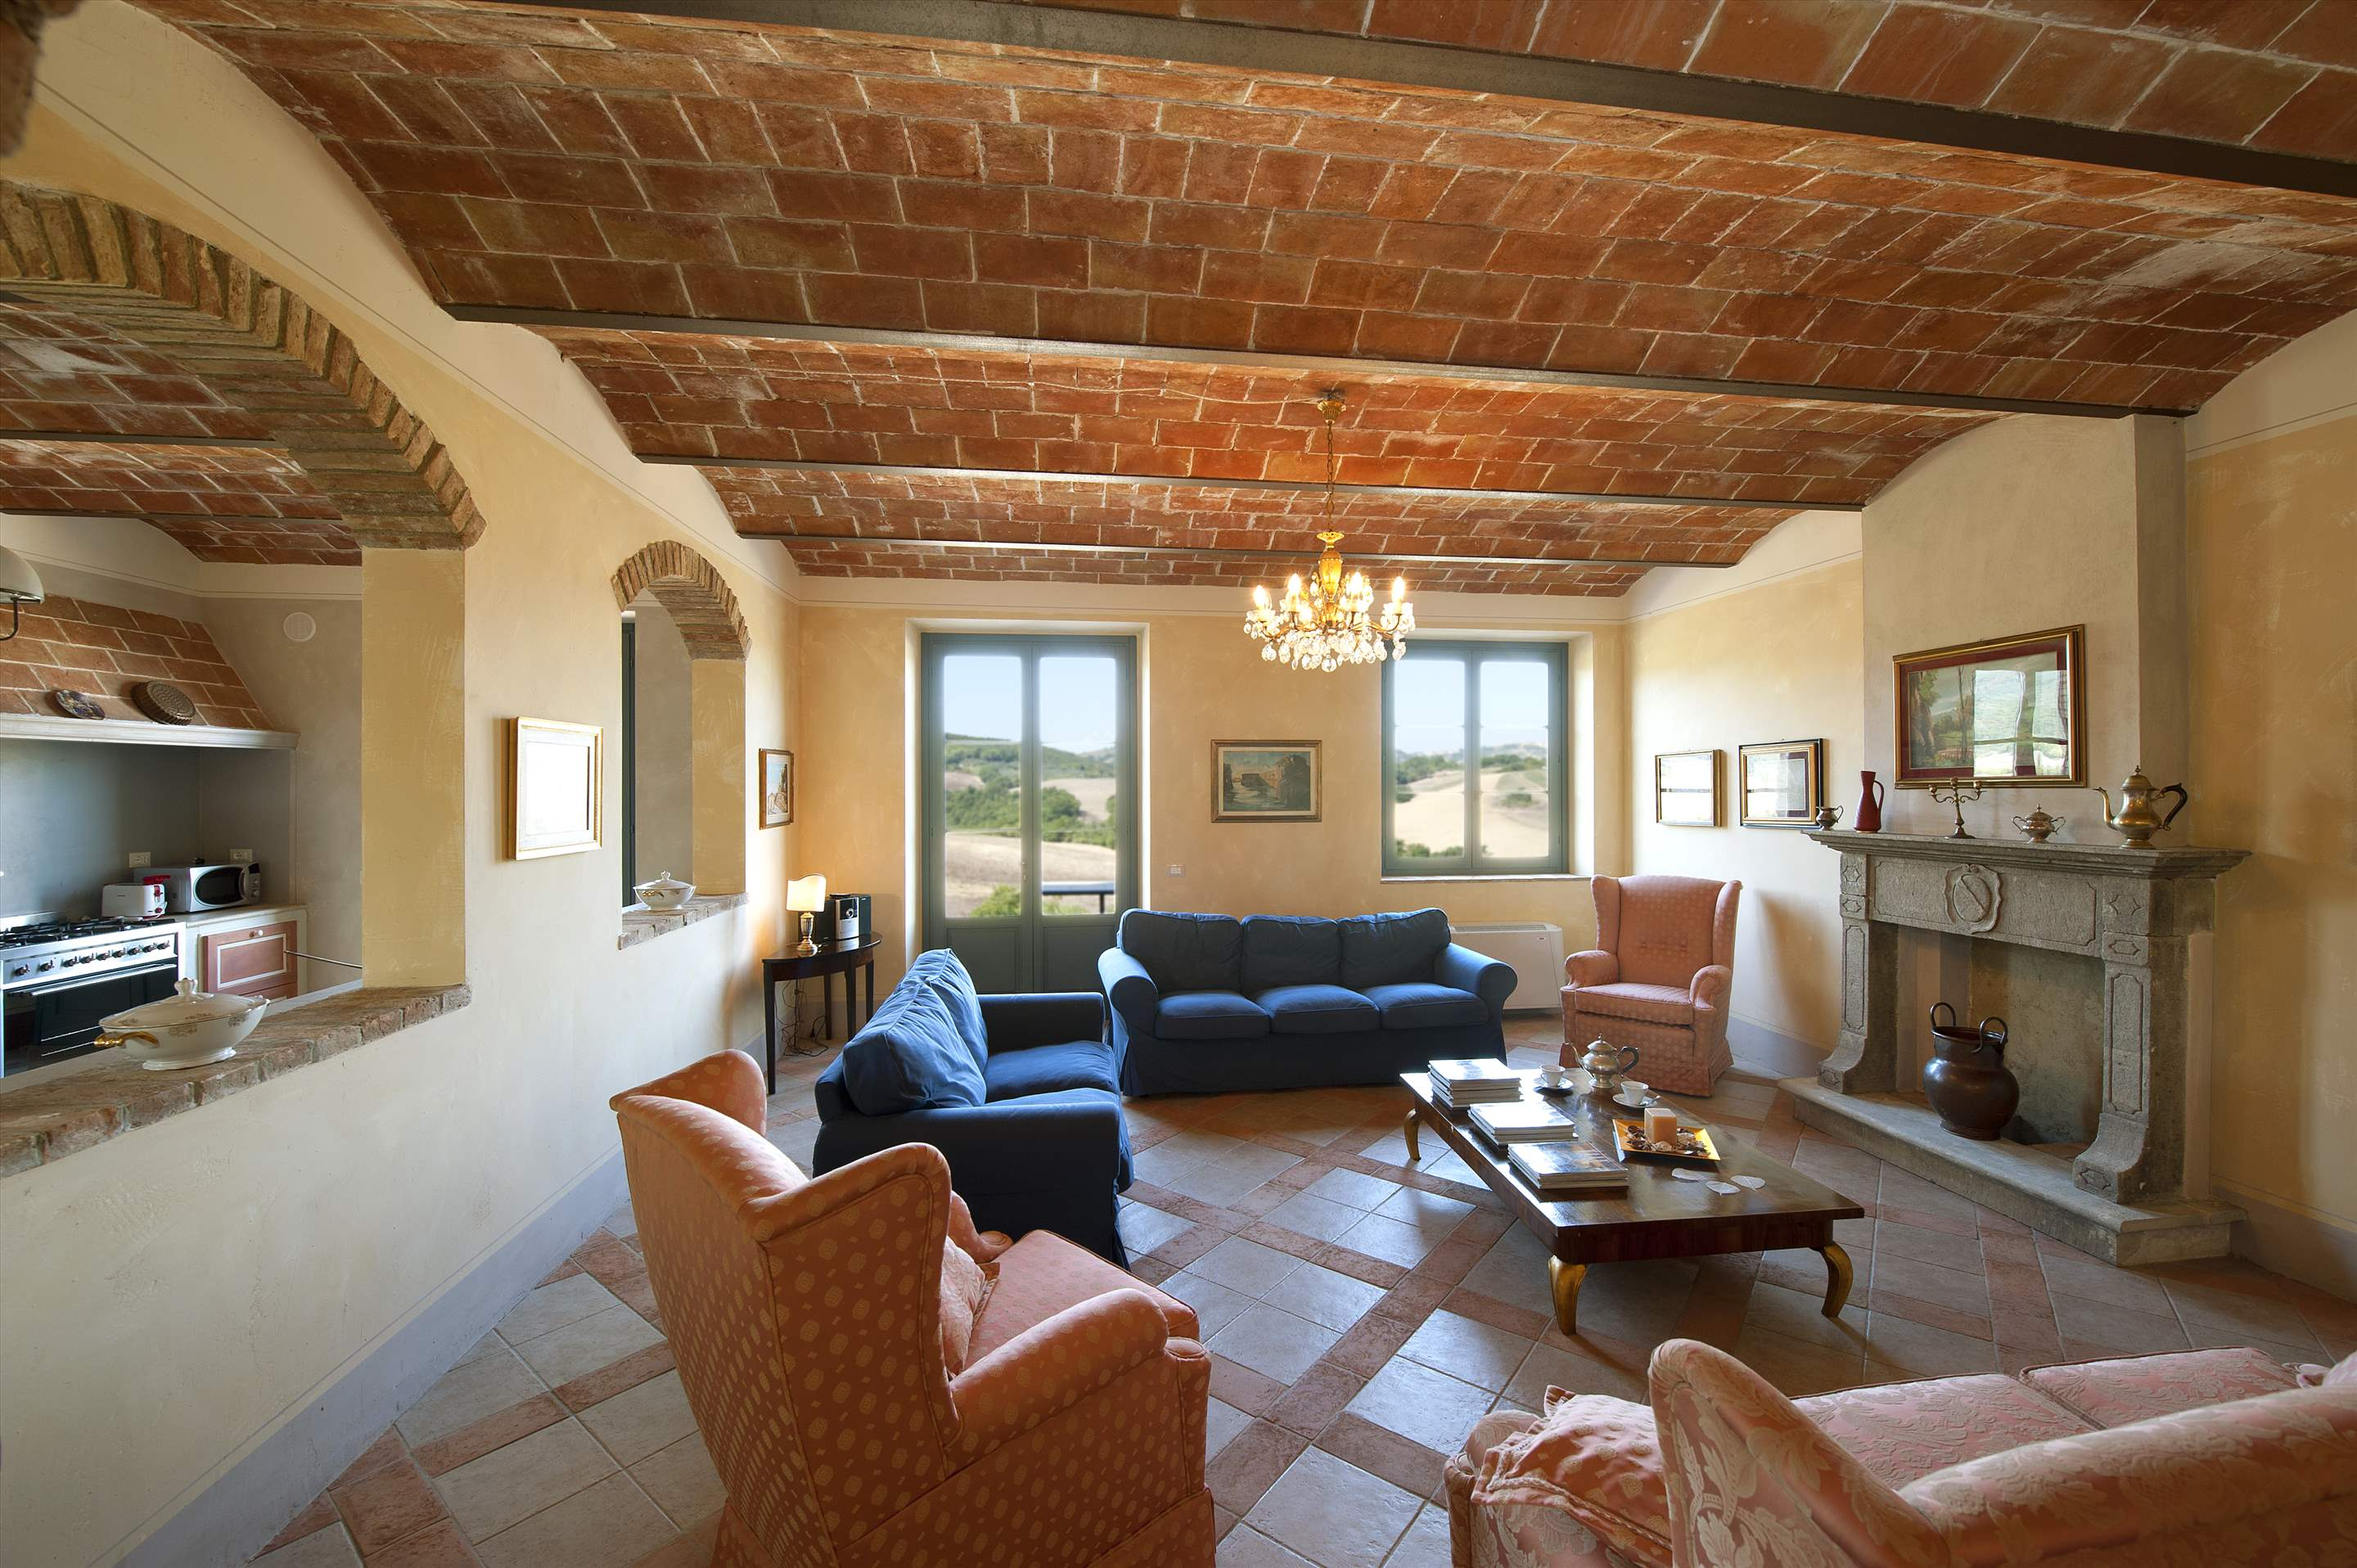 Podere Di Collina, Villa & Apts, 8 bedroom villa in Tuscany Coast, Tuscany Photo #6